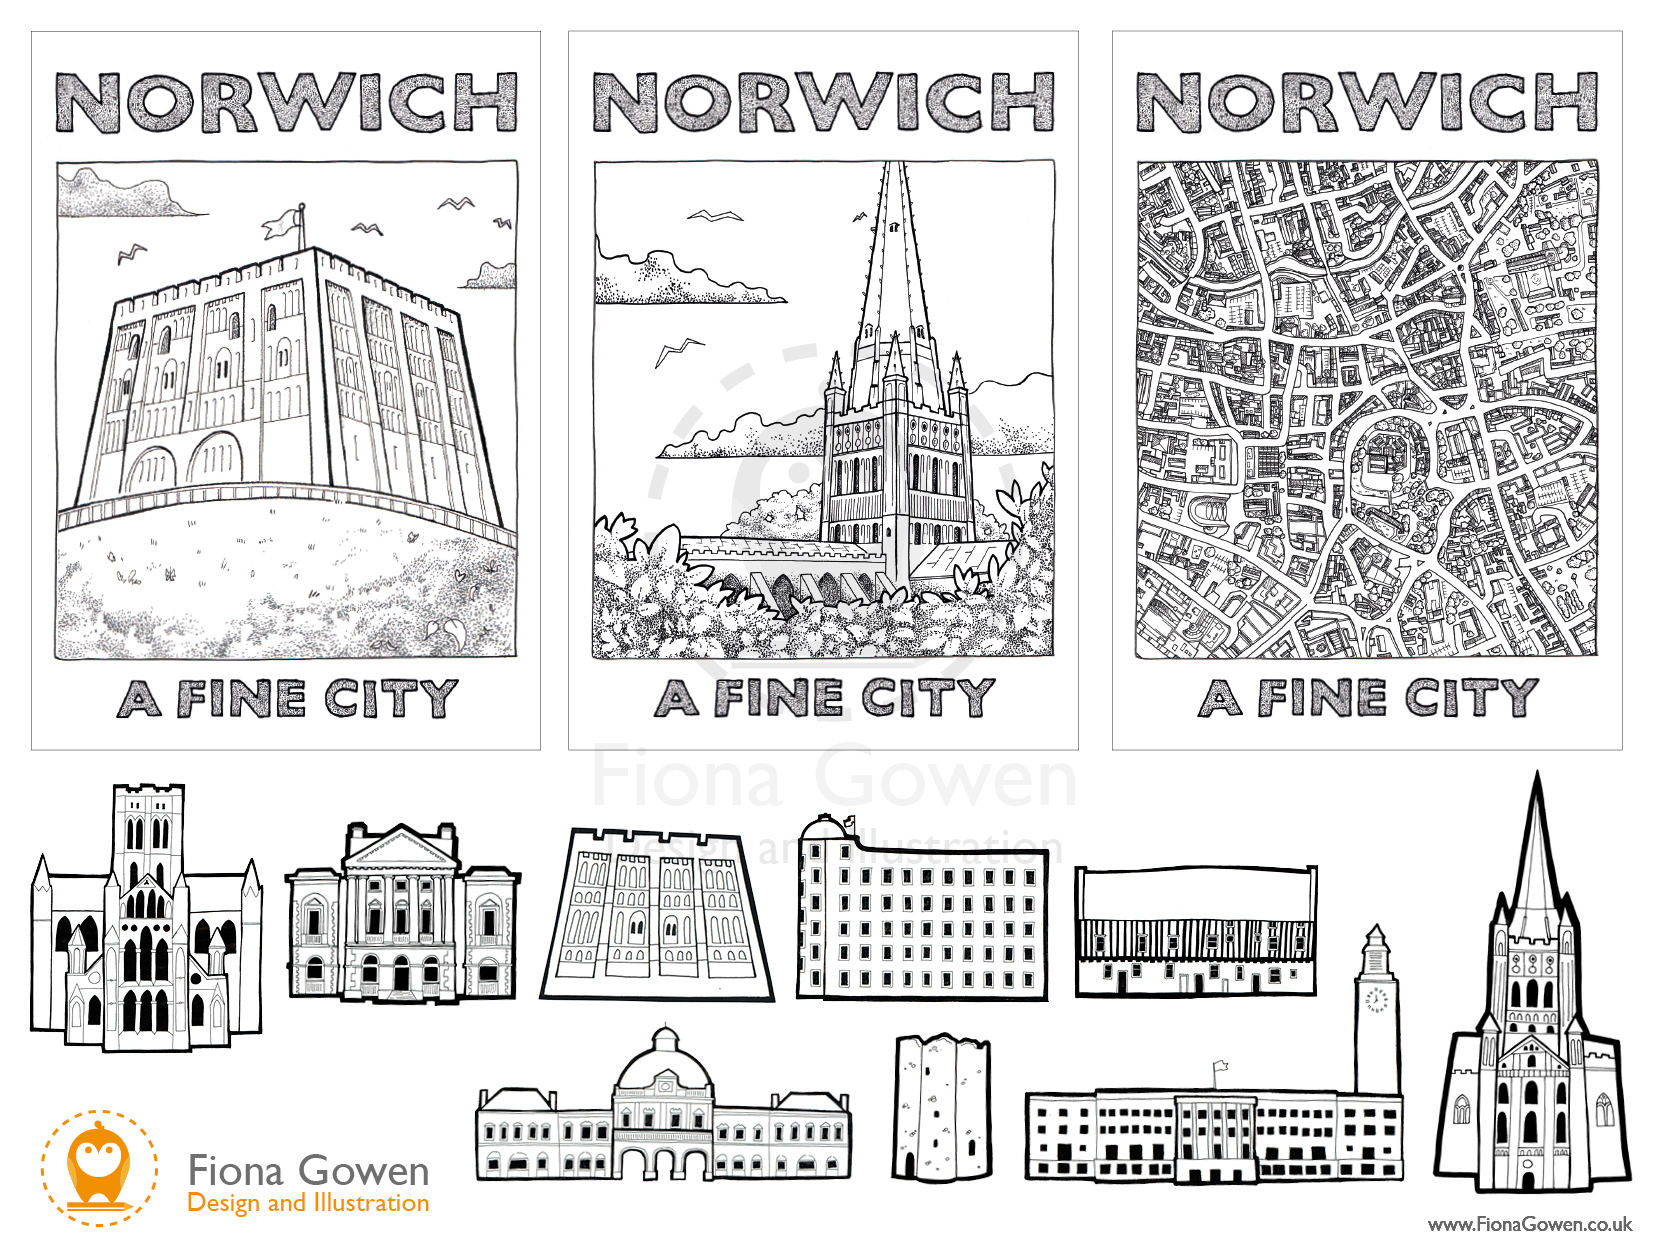 Illustrated icons of key Norwich buildings and postcards featuring illustrations of Norwich Castle, Norwich Cathedral and a map of central Norwich by Norwich Illustrator Fiona Gowen